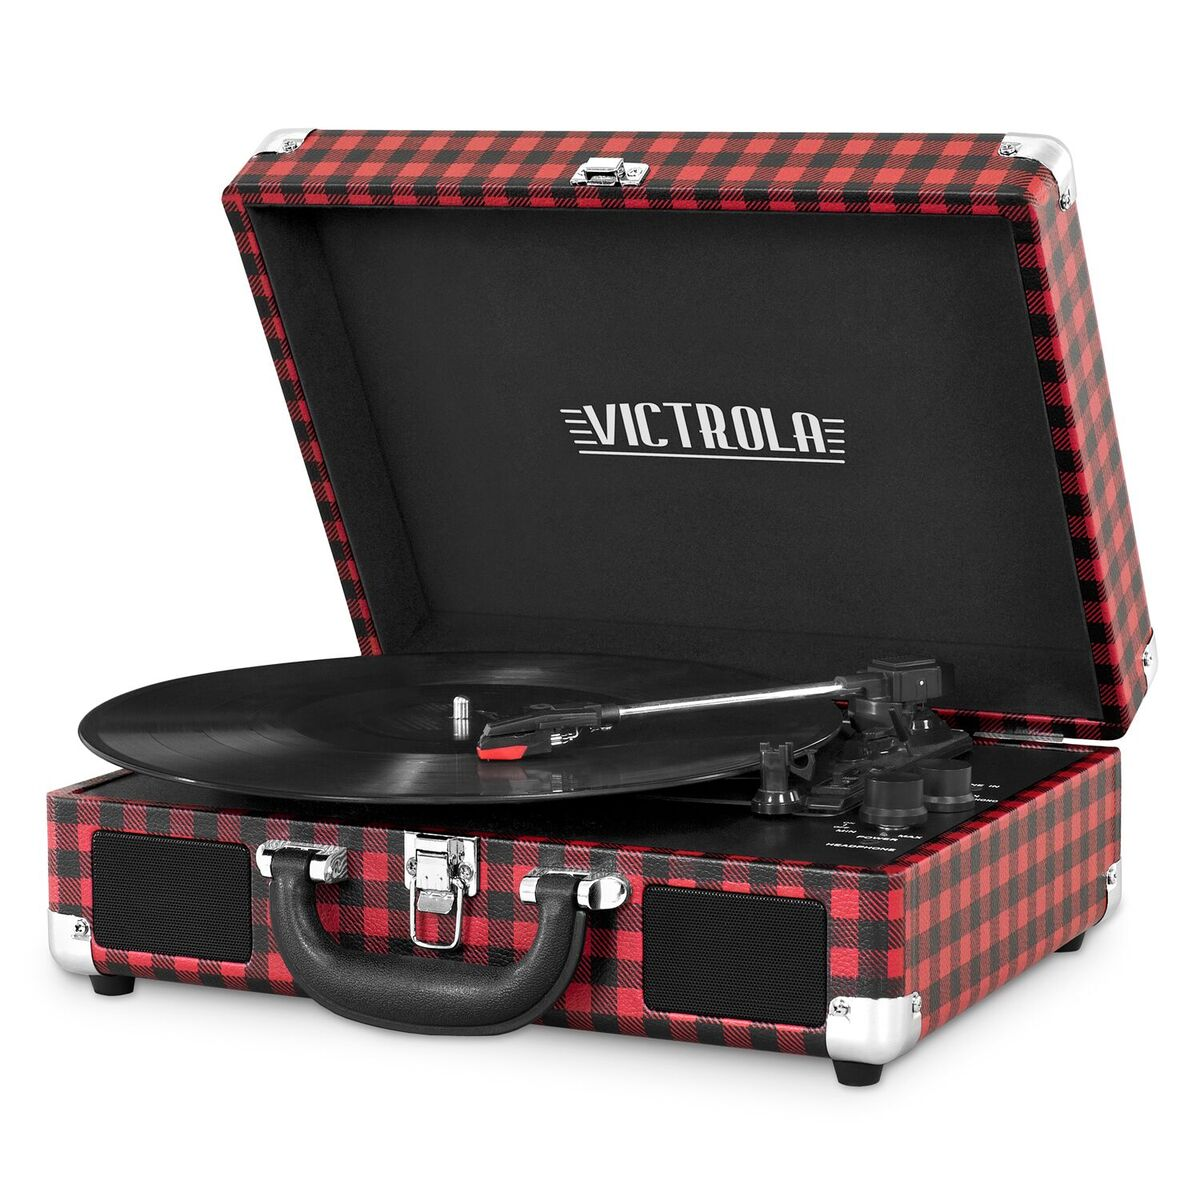 Portable Victrola Suitcase Record Player with Bluetooth and 3 Speed Turntable, Plaid